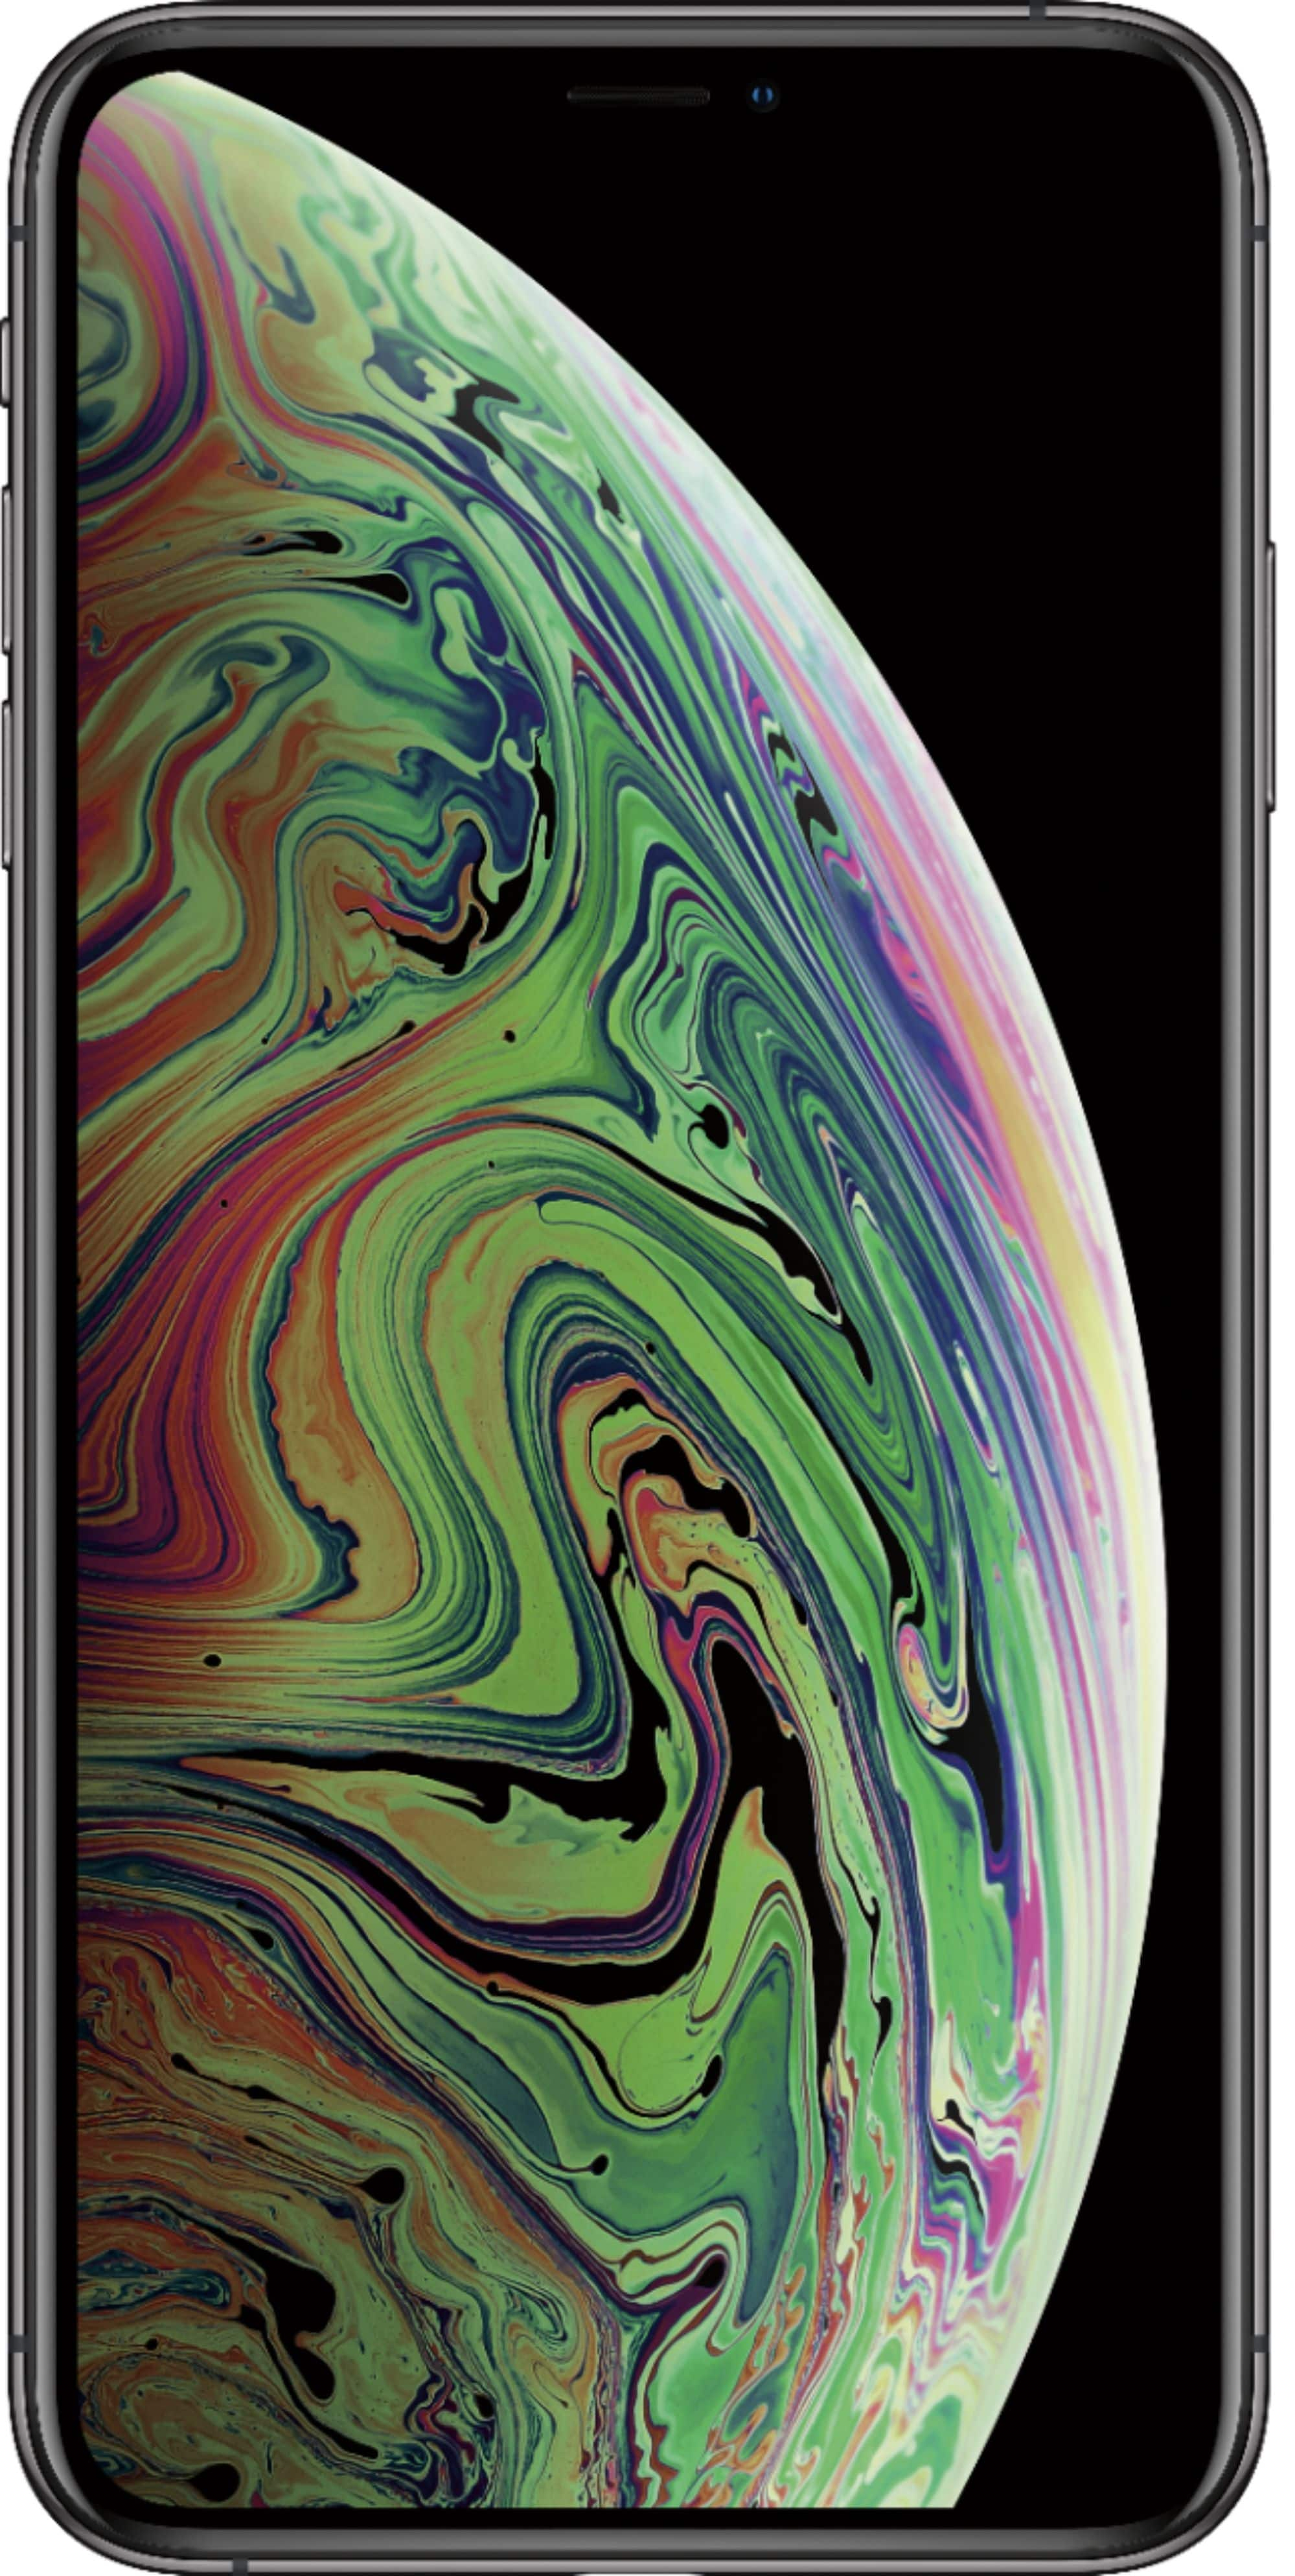 Apple - iPhone XS Max 256GB - Space Gray (Sprint) $399.99